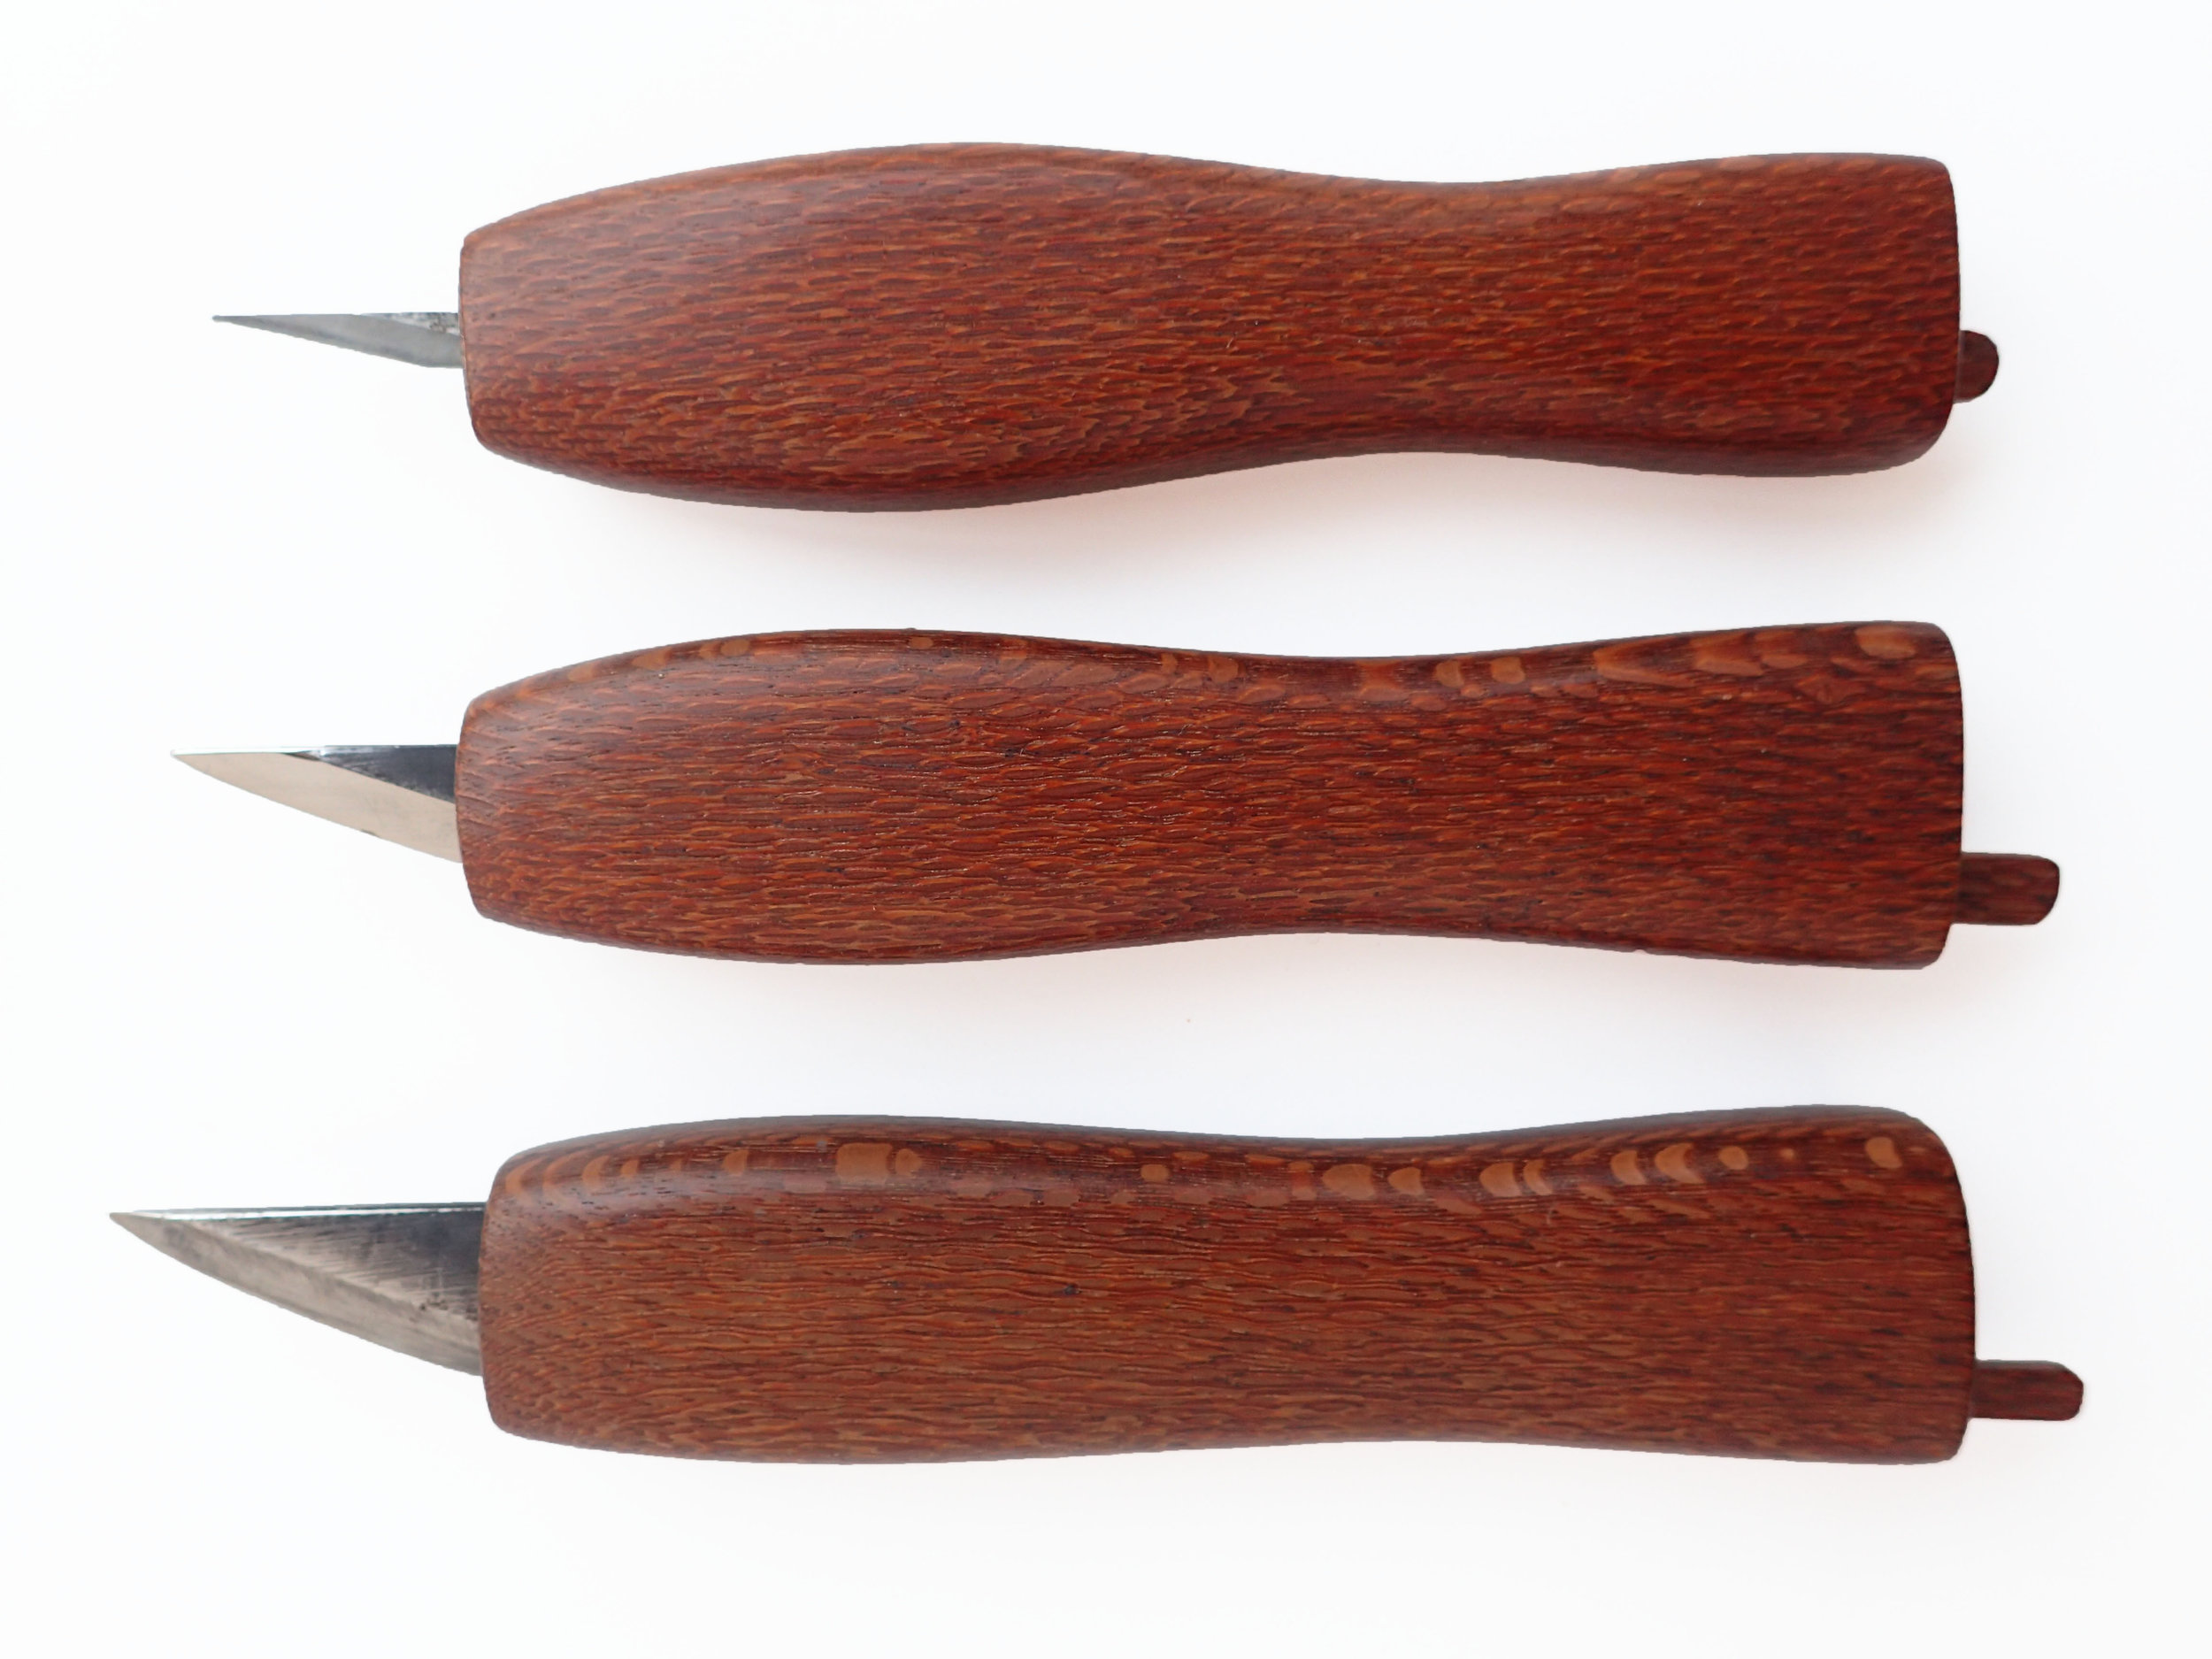 Double Bevel Knives